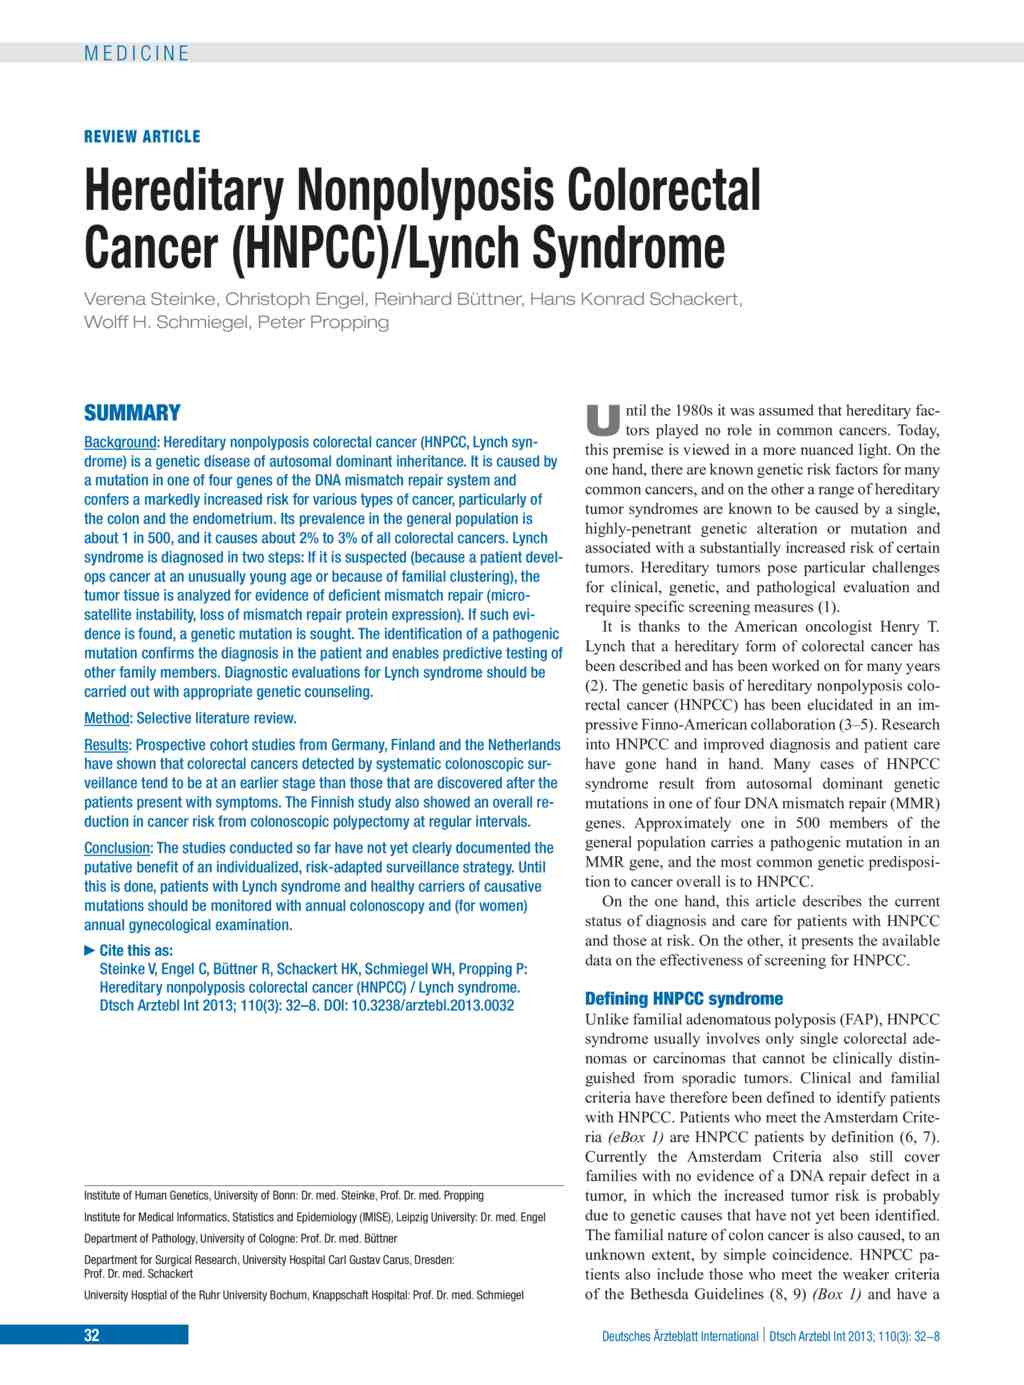 Hereditary Nonpolyposis Colorectal Cancer Hnpcc Lynch Syndrome 18 01 2013